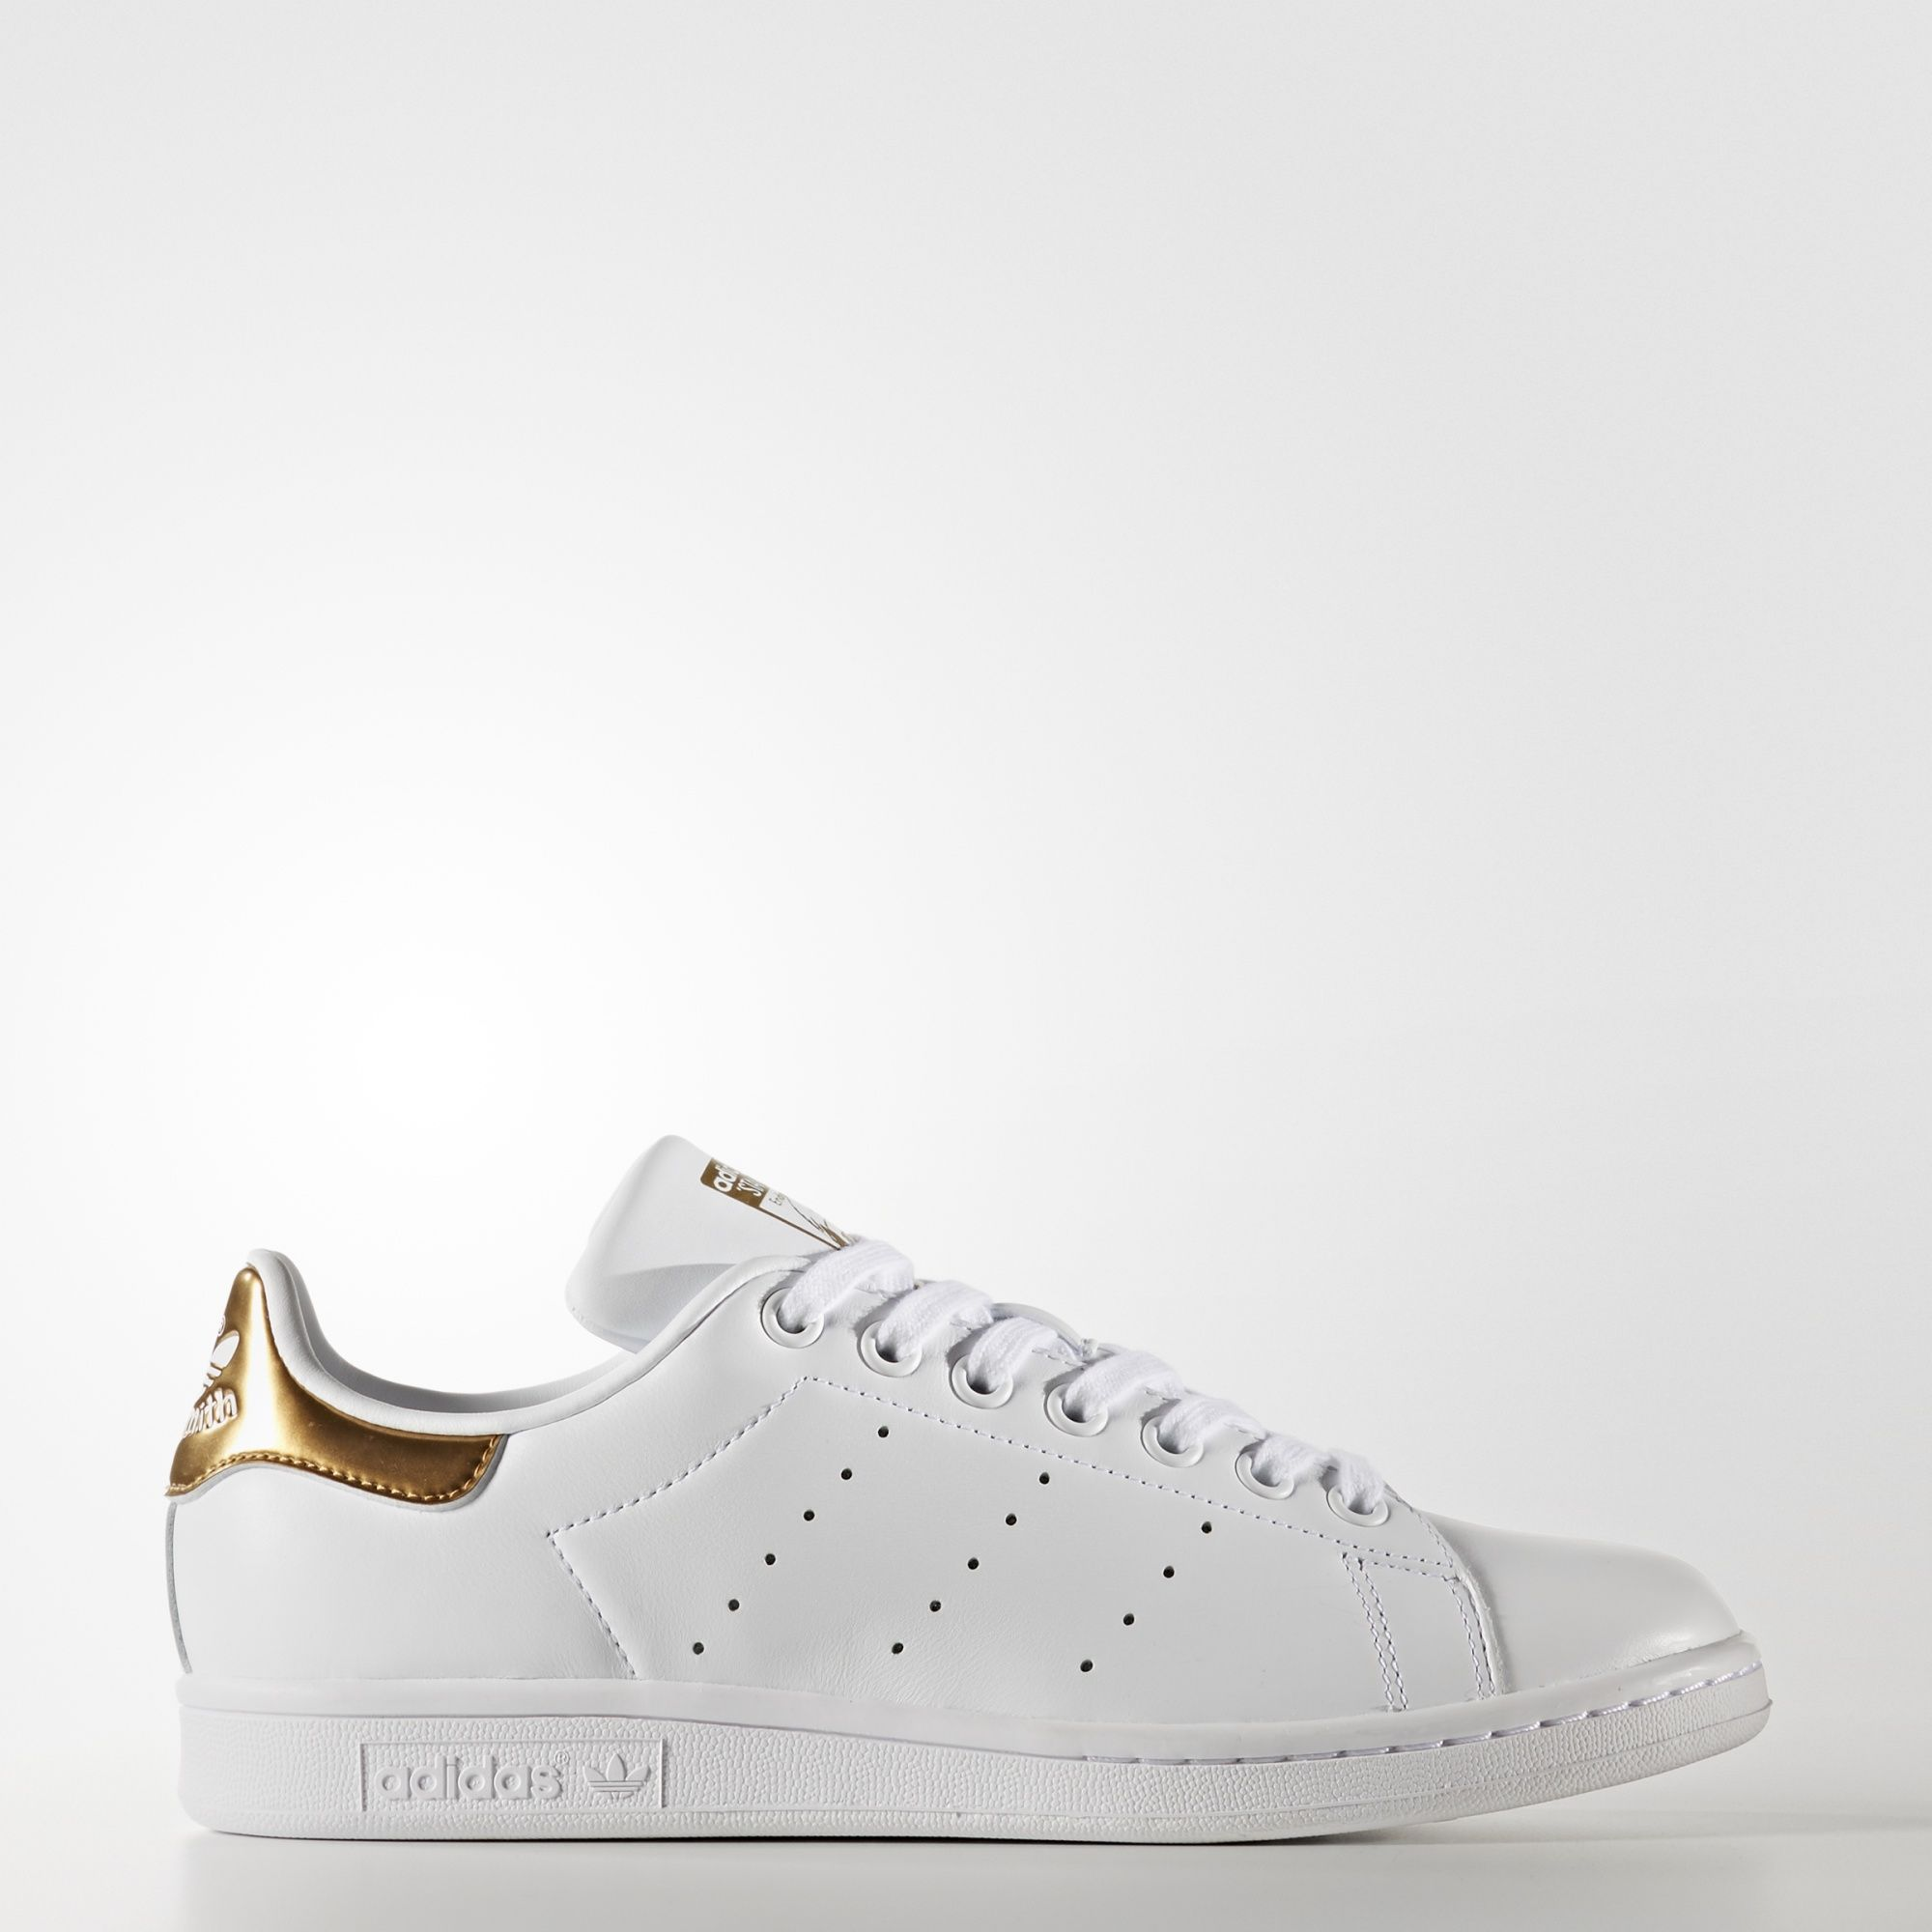 best website bbcc1 87925 adidas - Stan Smith Shoes   Shoes   Pinterest   Adidas stan smith shoes,  Stan smith shoes and Stan smith